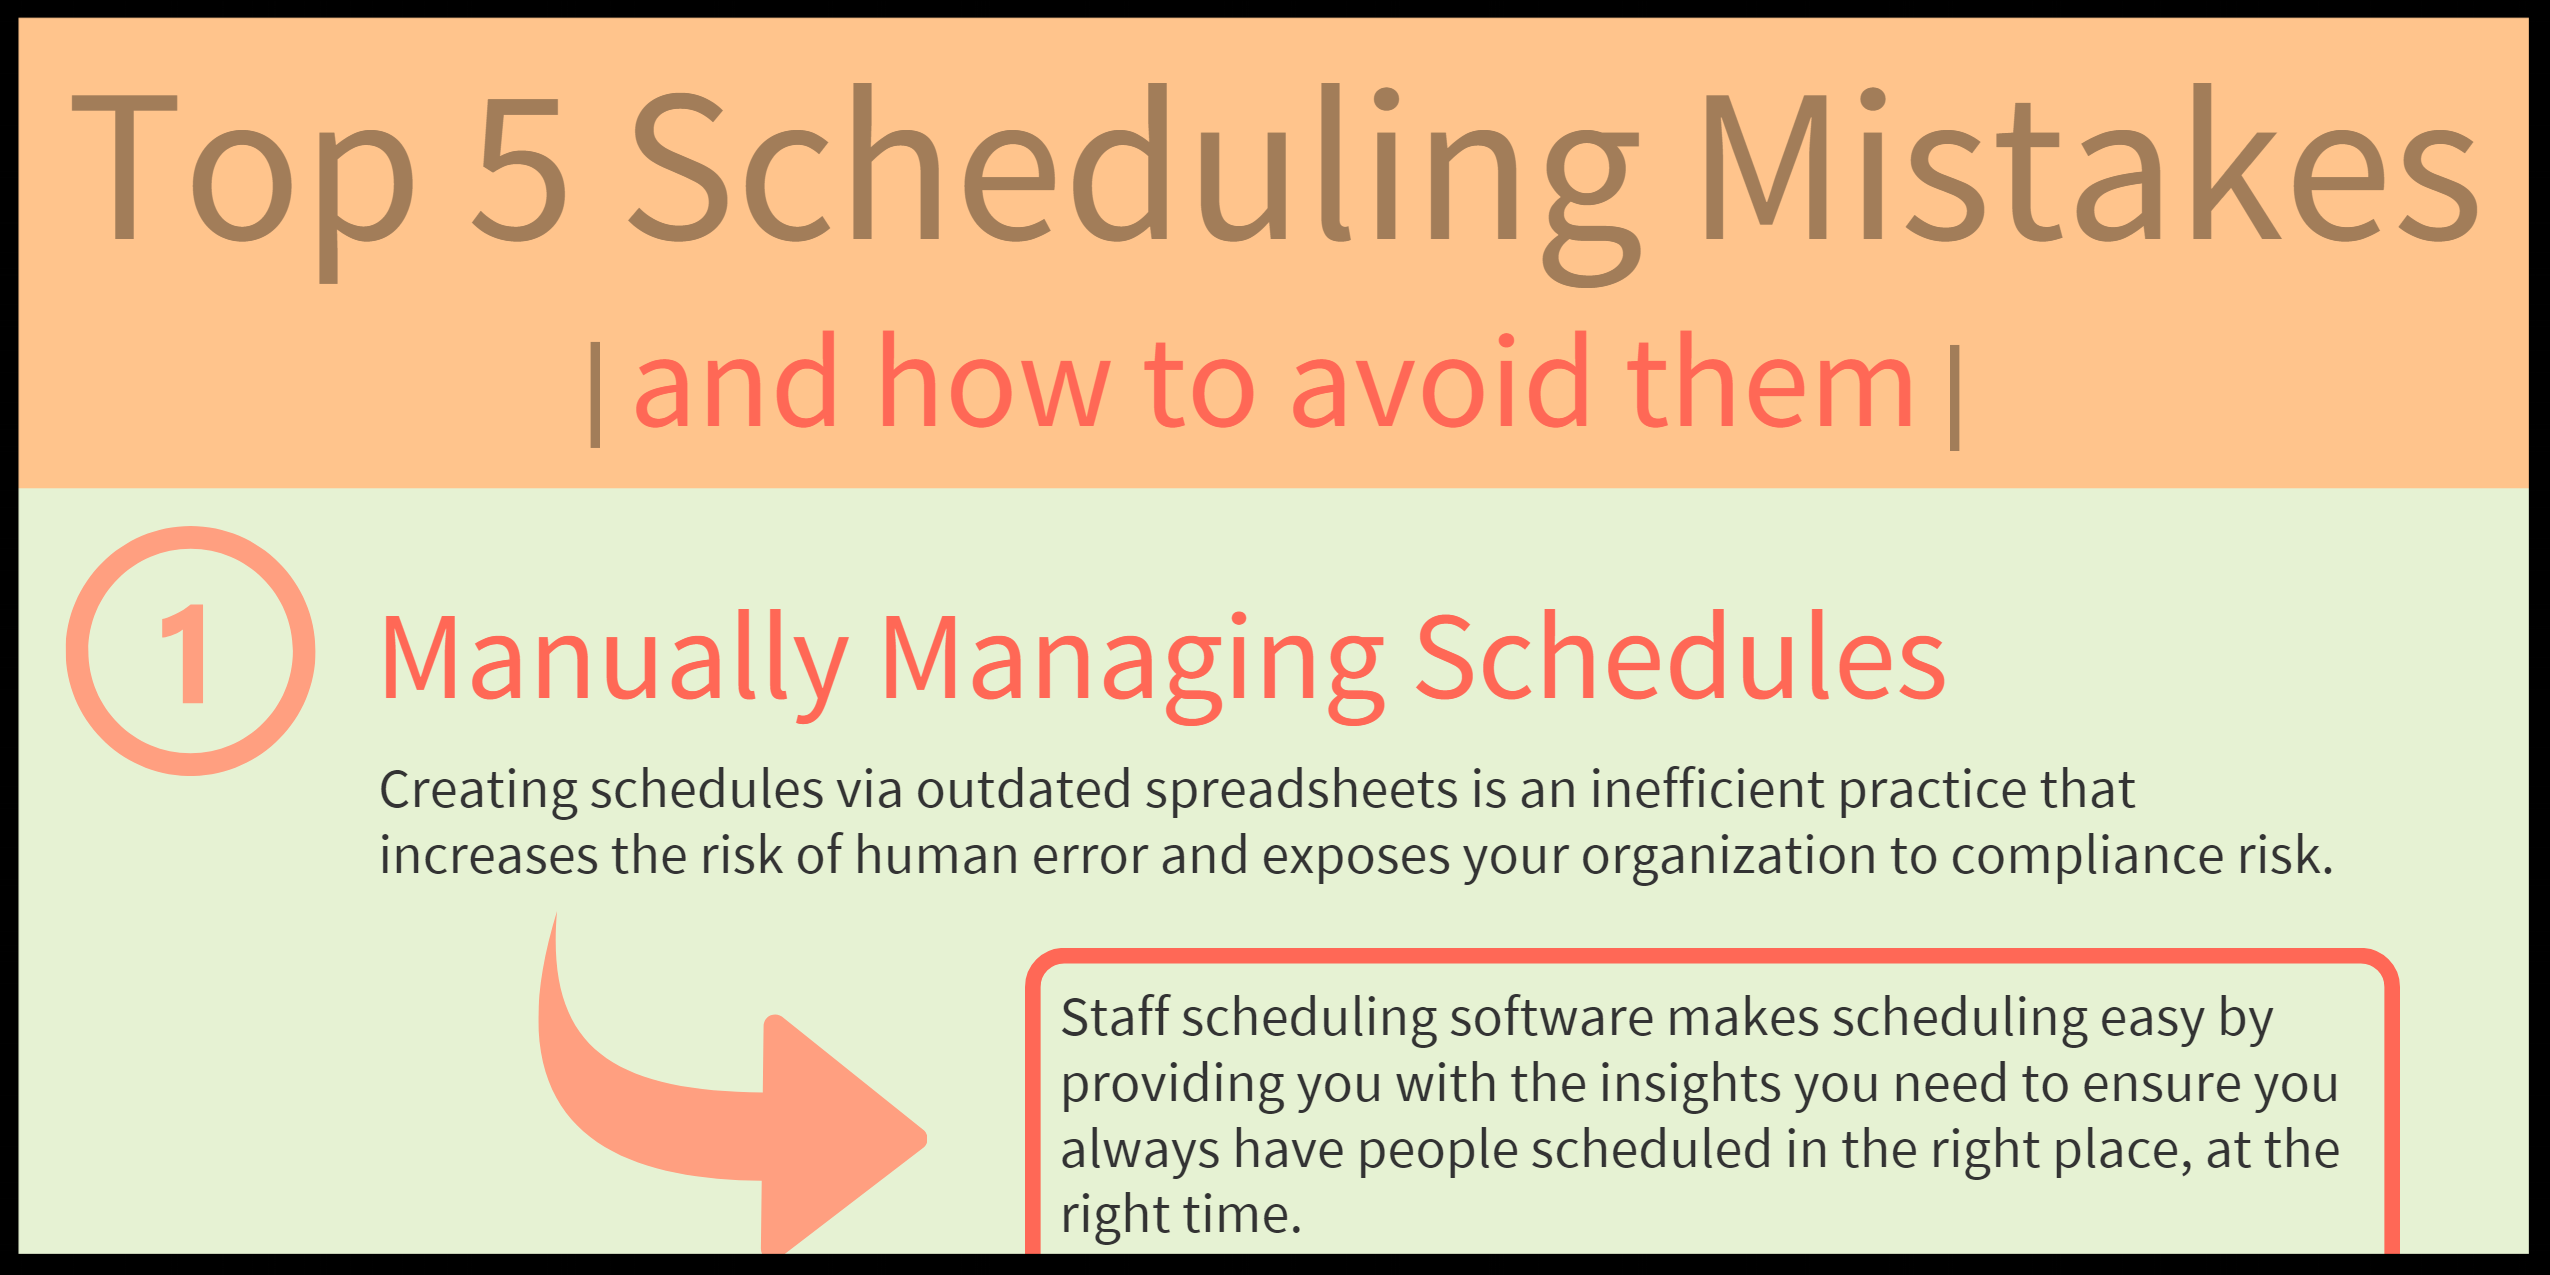 Top 5 Scheduling Mistakes